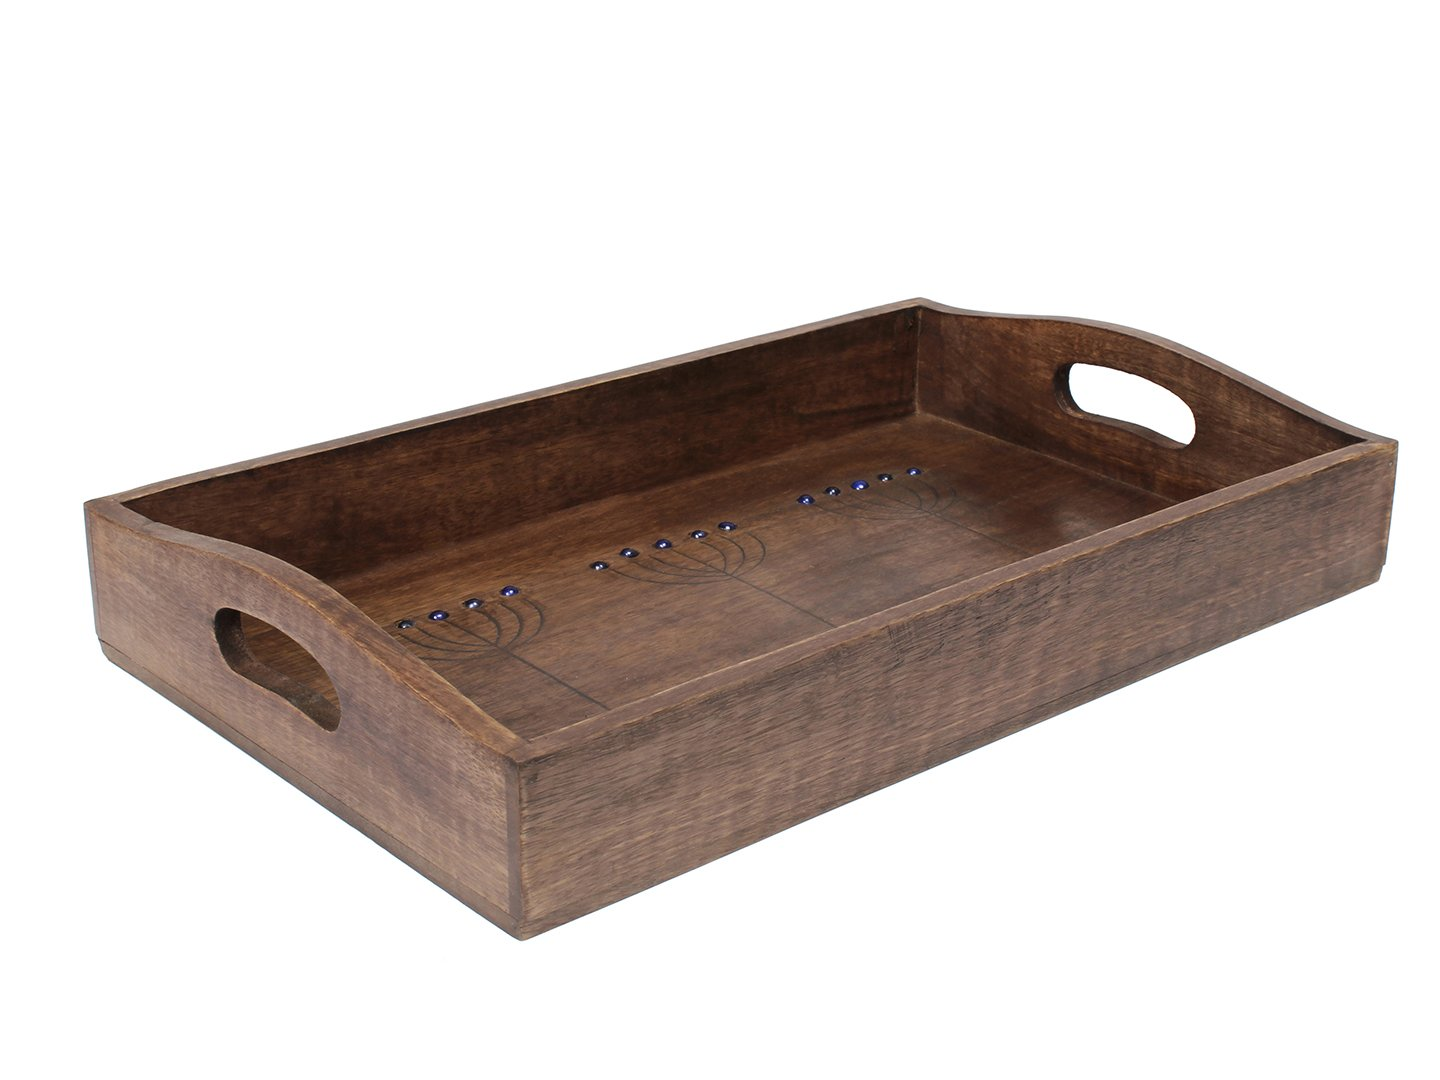 Amazon.com: handcrafted Vintage Wooden Serving Tray Large Brown Wood Hand  Carved with Handle 16 X 10 Inches: Kitchen & Dining